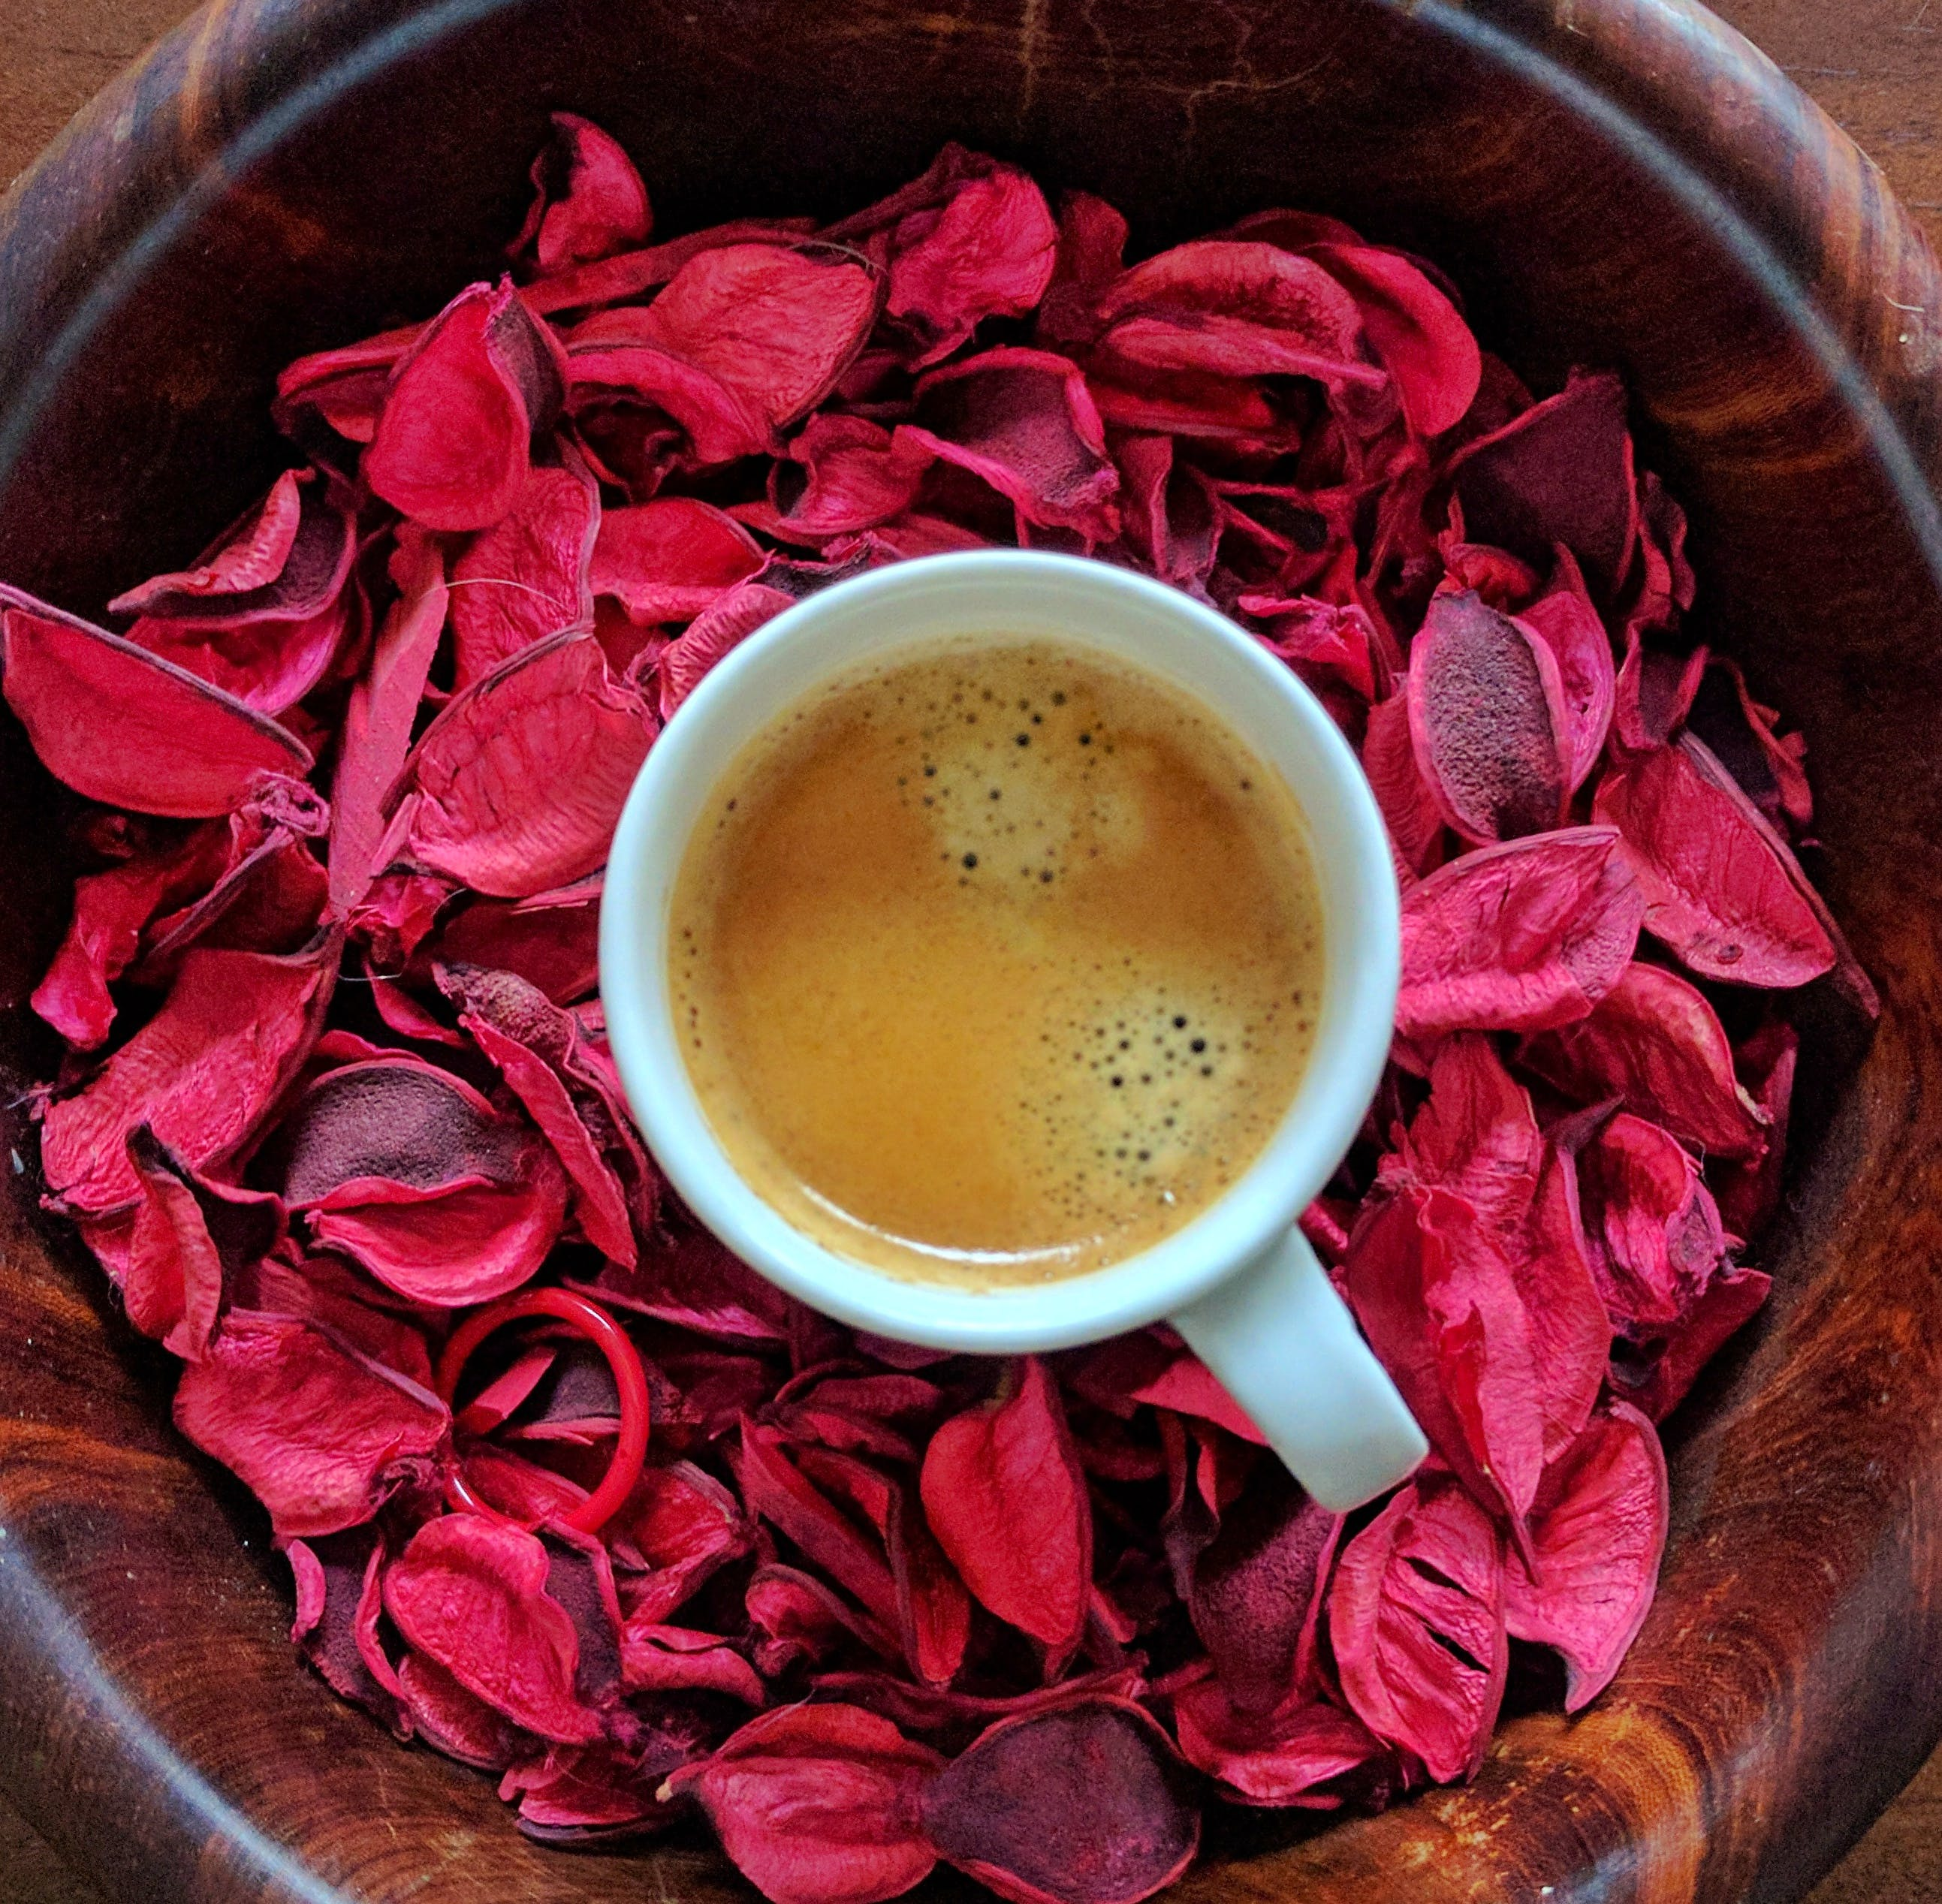 Free stock photo of coffee, espresso shot, potpourri